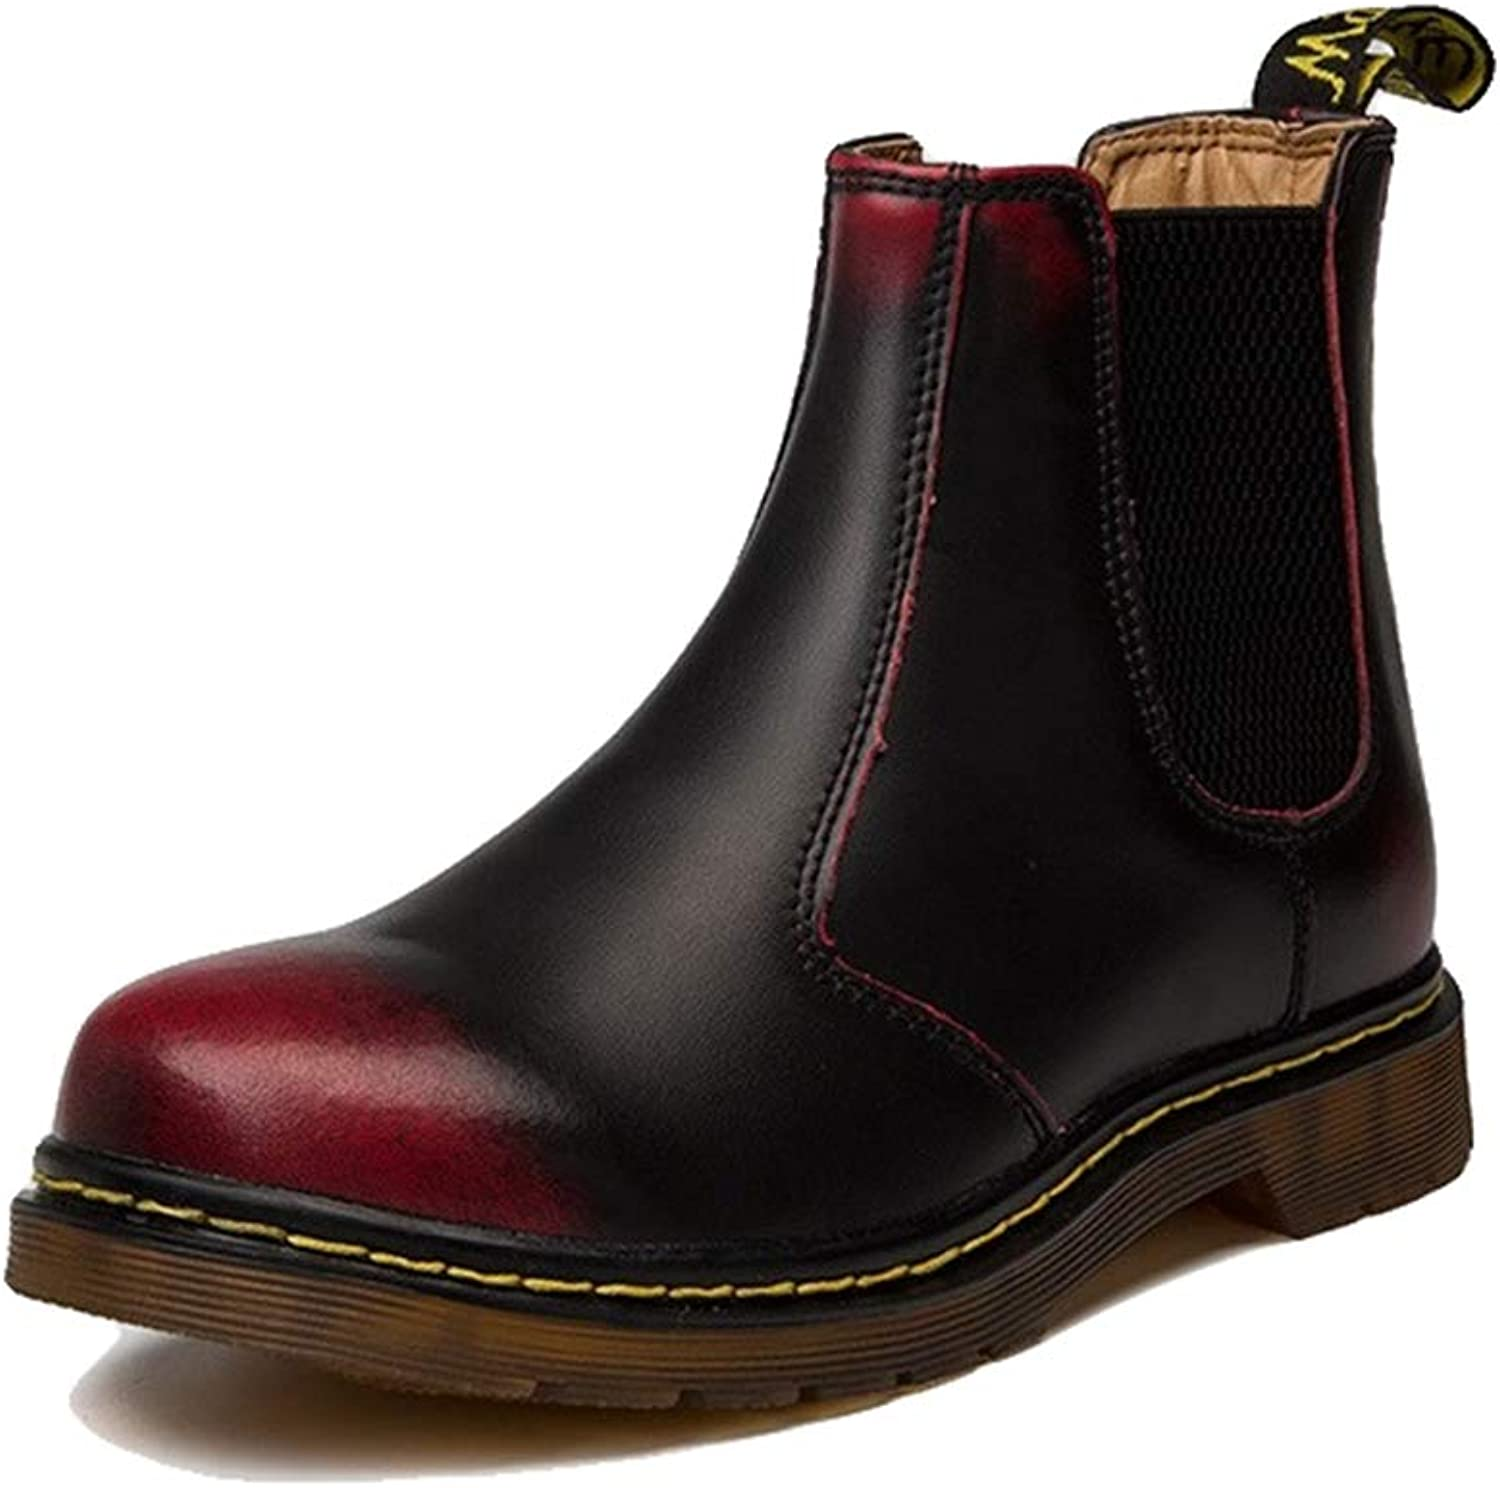 Giles Jones Chelsea Boots Men Autumn Winter Classic Slip-on Comfortable Casual Ankle Boots